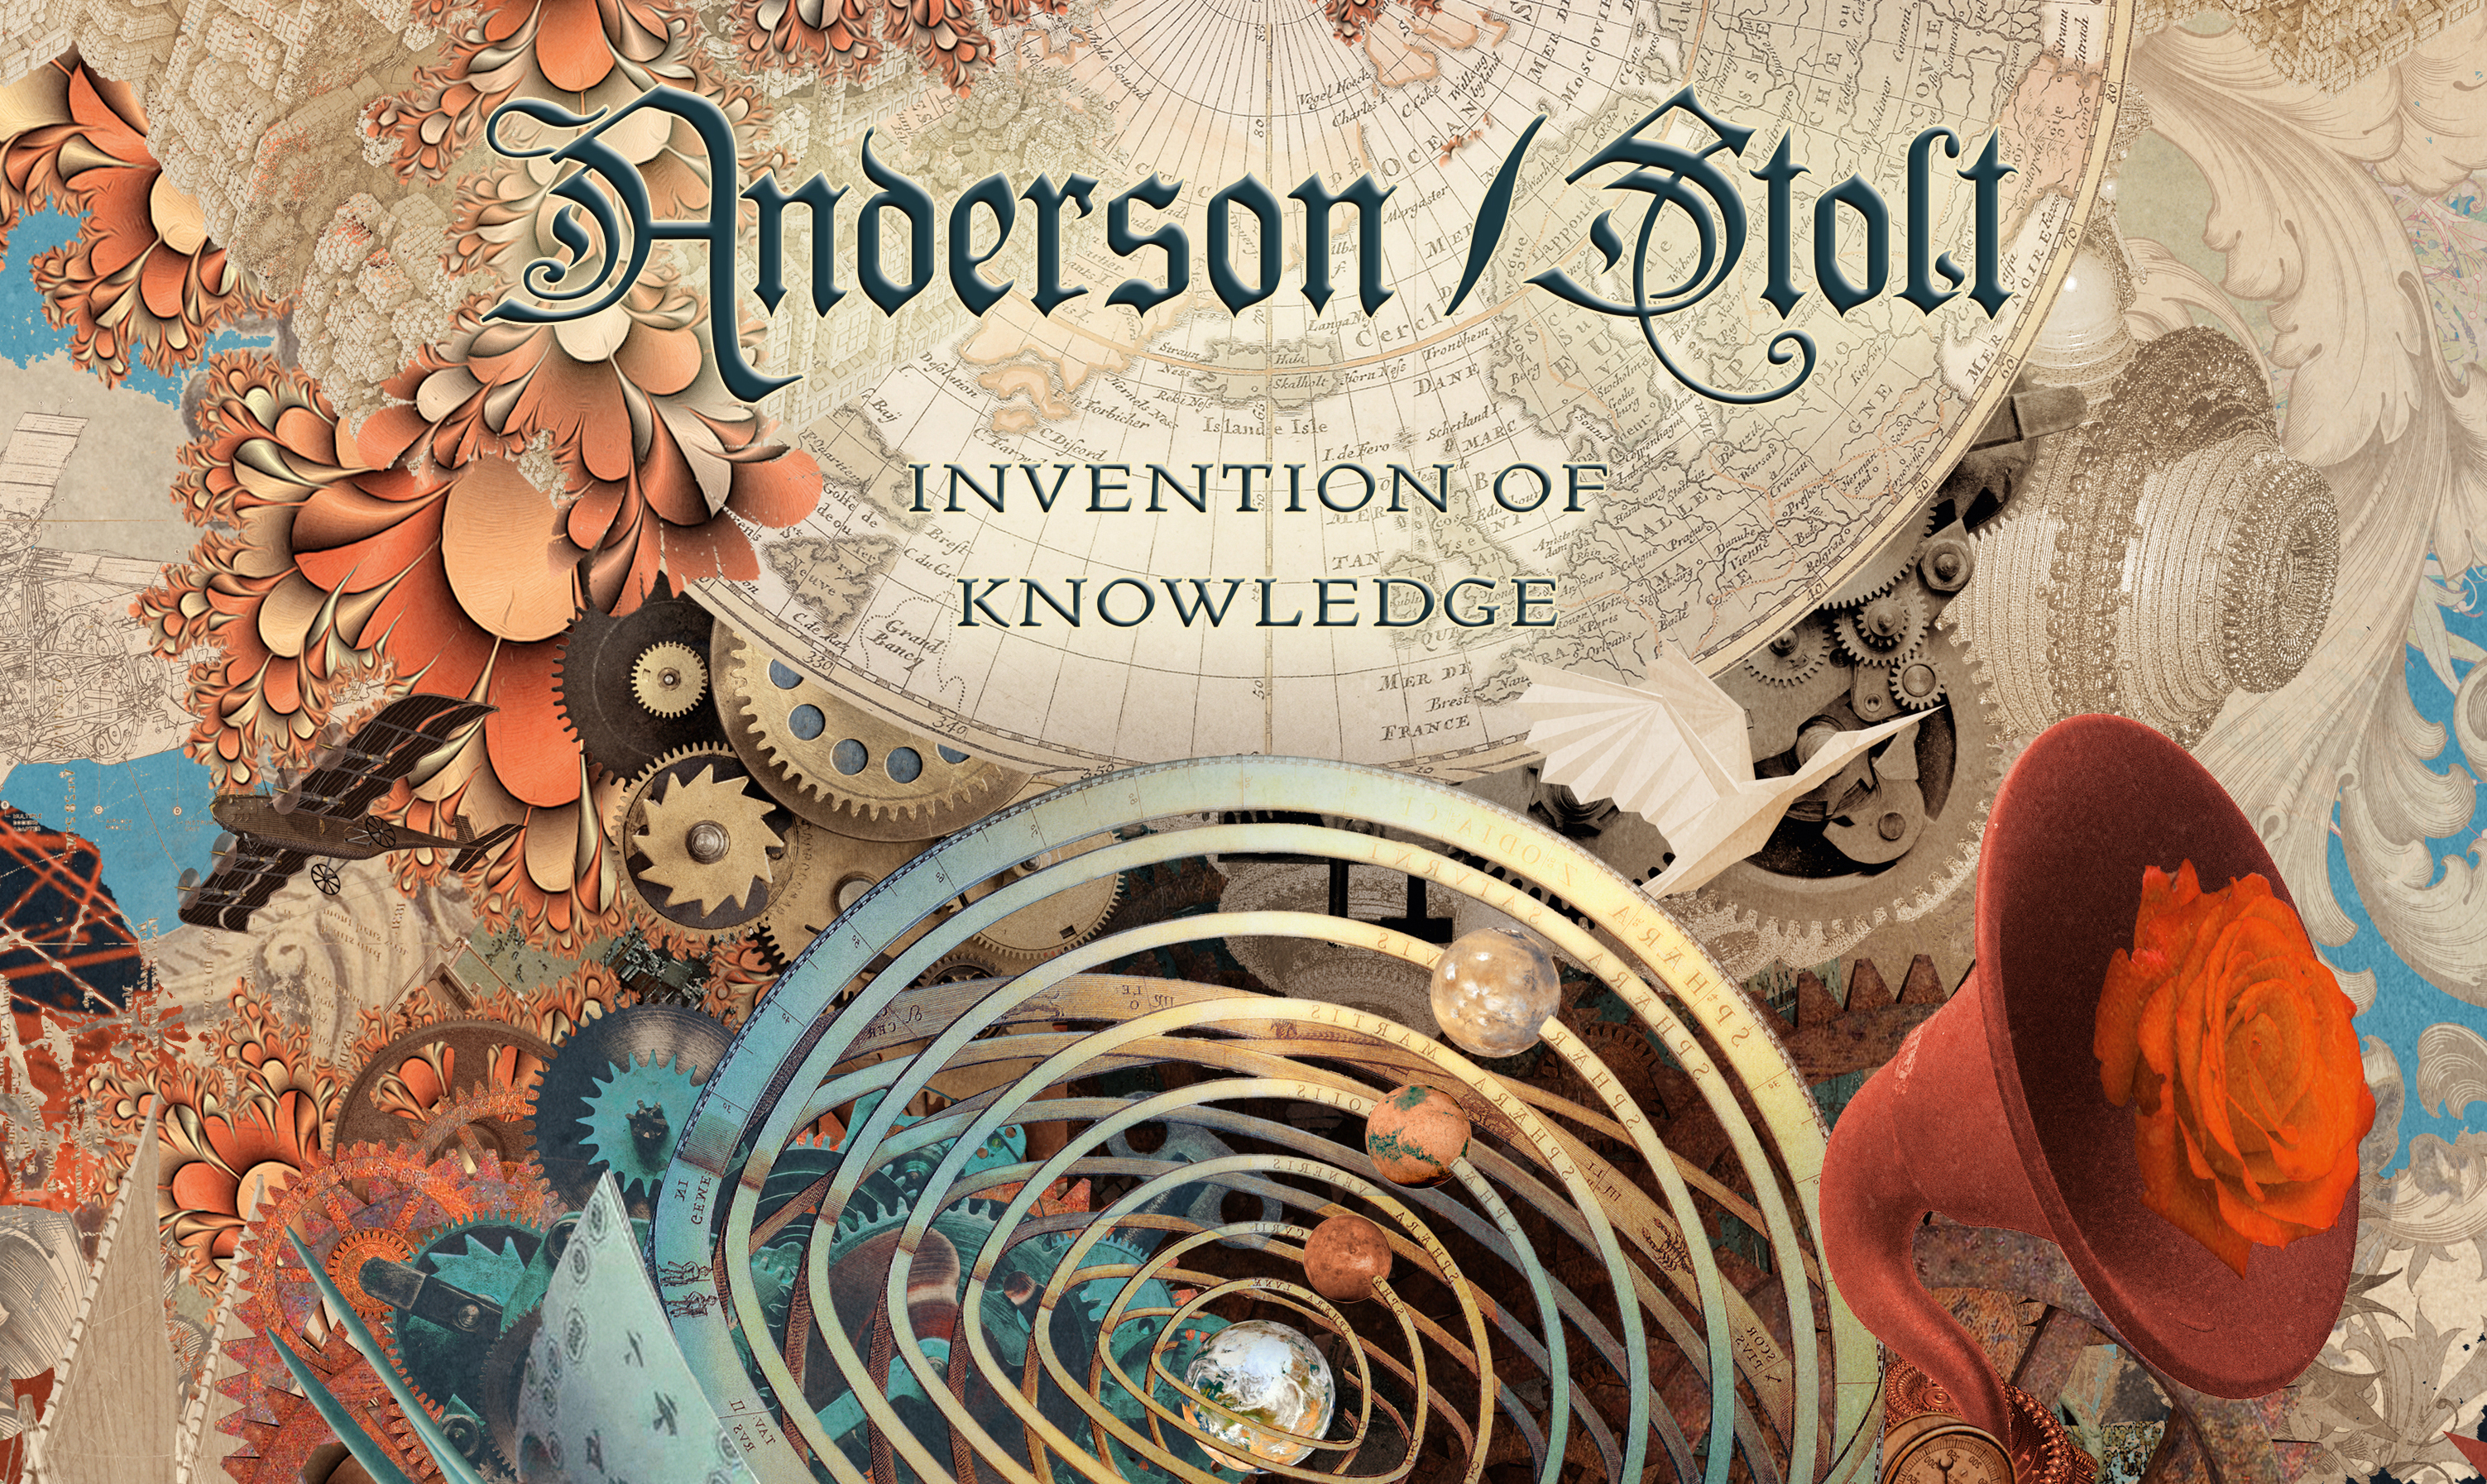 Anderson/Stolt release 2nd trailer for upcoming album